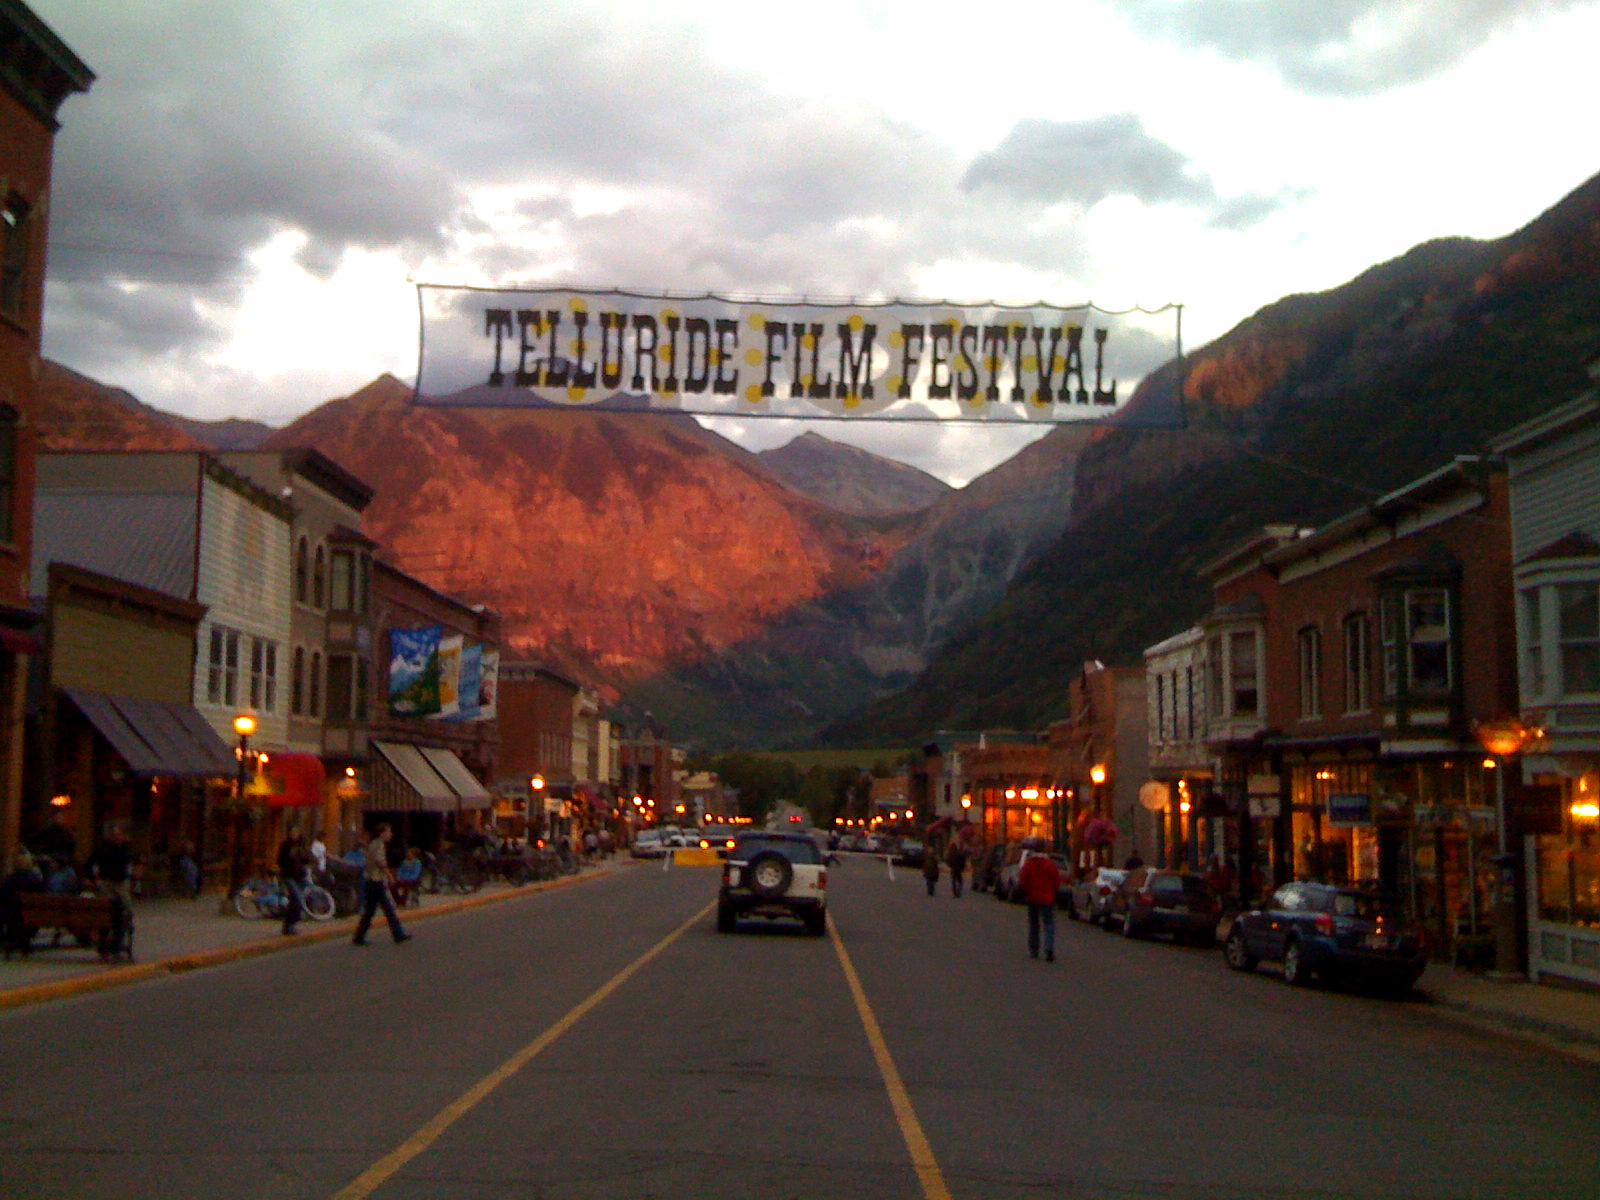 The Hits of Telluride Film Festival